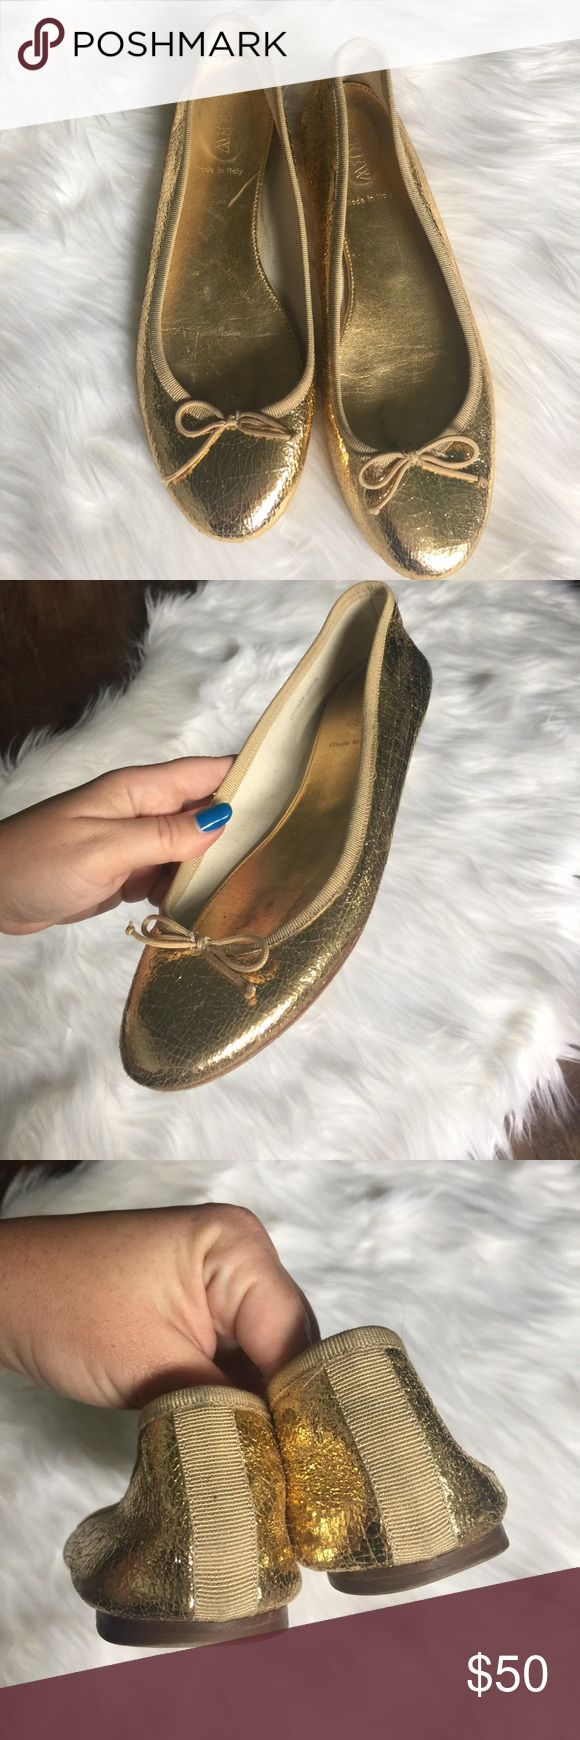 J. Crew Italian Made Gold Metallic Ballet Flats J. Crew Italian Made Gold Metallic Ballet Flats.  Leather.  Preloved but in great condition.  Size 7.5. J. Crew Shoes Flats & Loafers